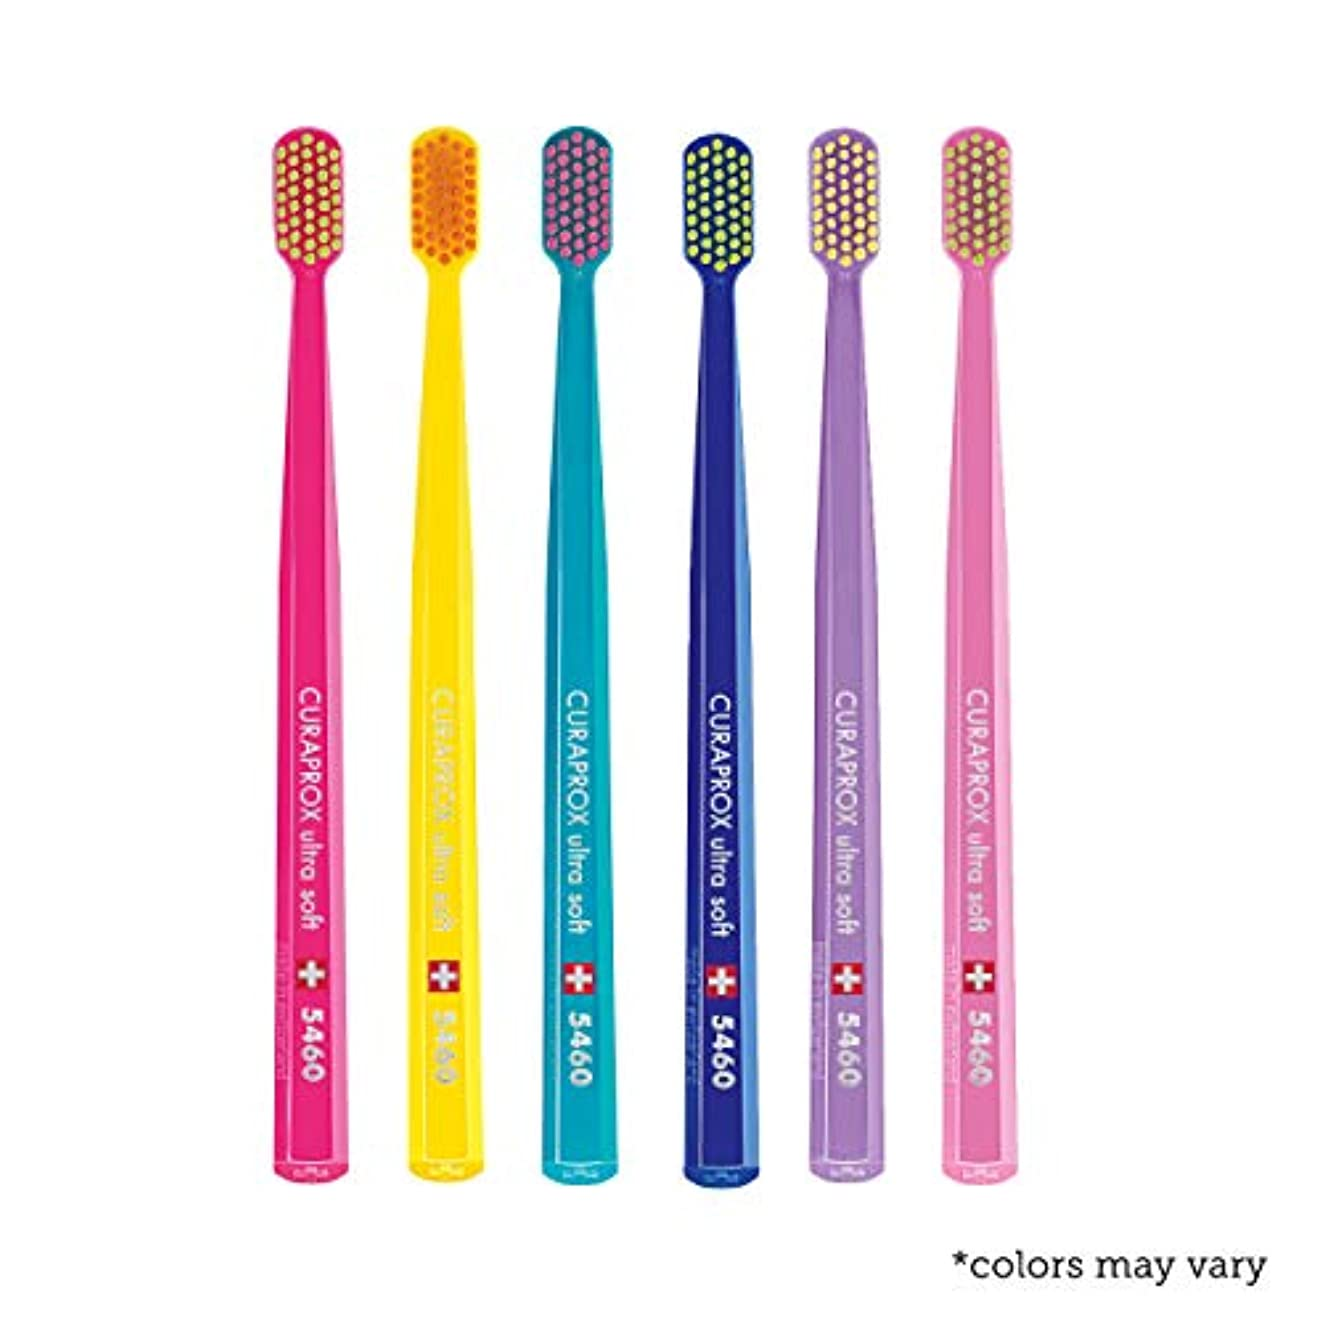 信仰パテ滑り台Ultra soft toothbrush, 6 brushes, Curaprox Ultra Soft 5460. Softer feeling & better cleaning, in amazing vivid...